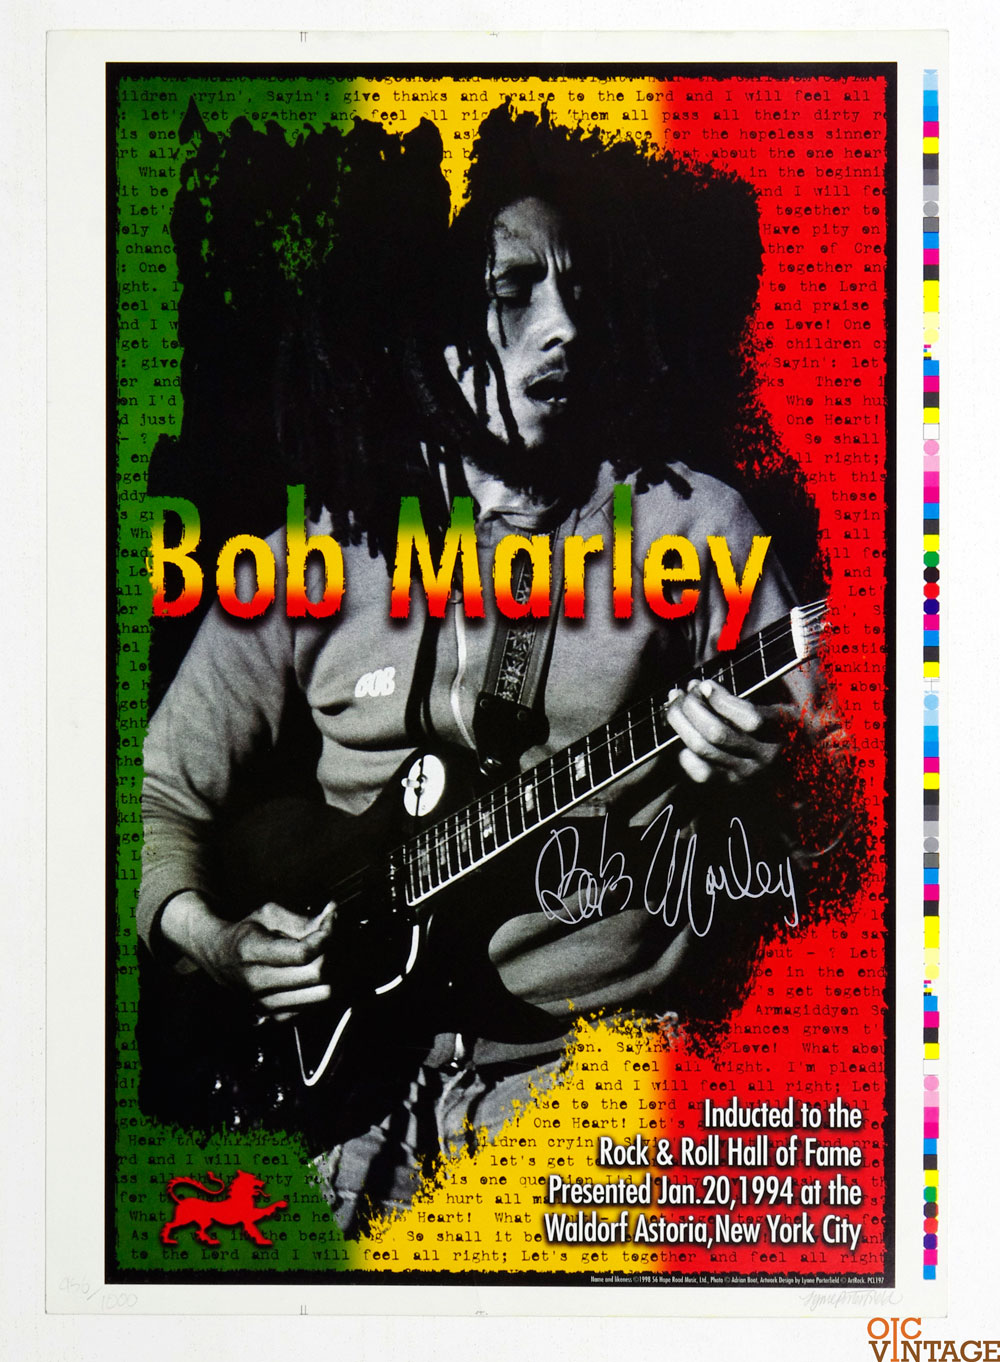 Bob Marley signed Poster Proof Rock and Roll Hall of Fame Inducted 1994 Lynn Porterfiled signed and numberd